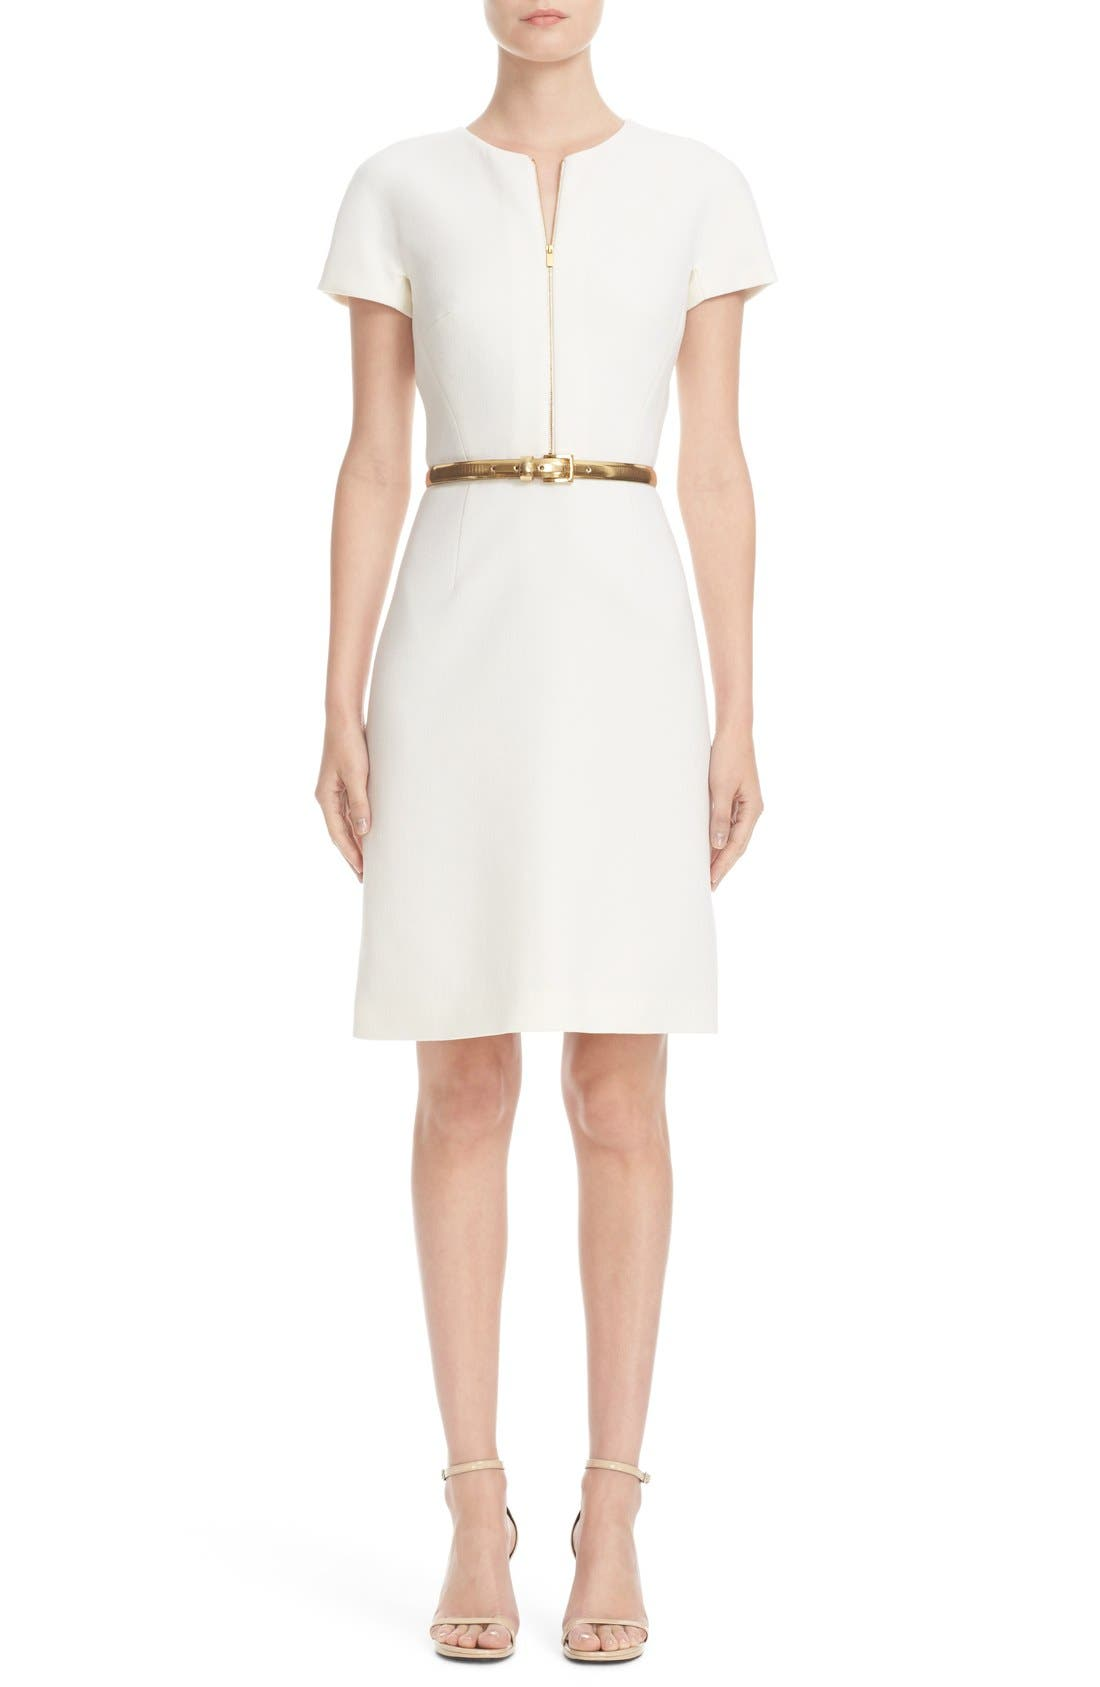 MICHAEL KORS Stretch Wool Crepe Dress